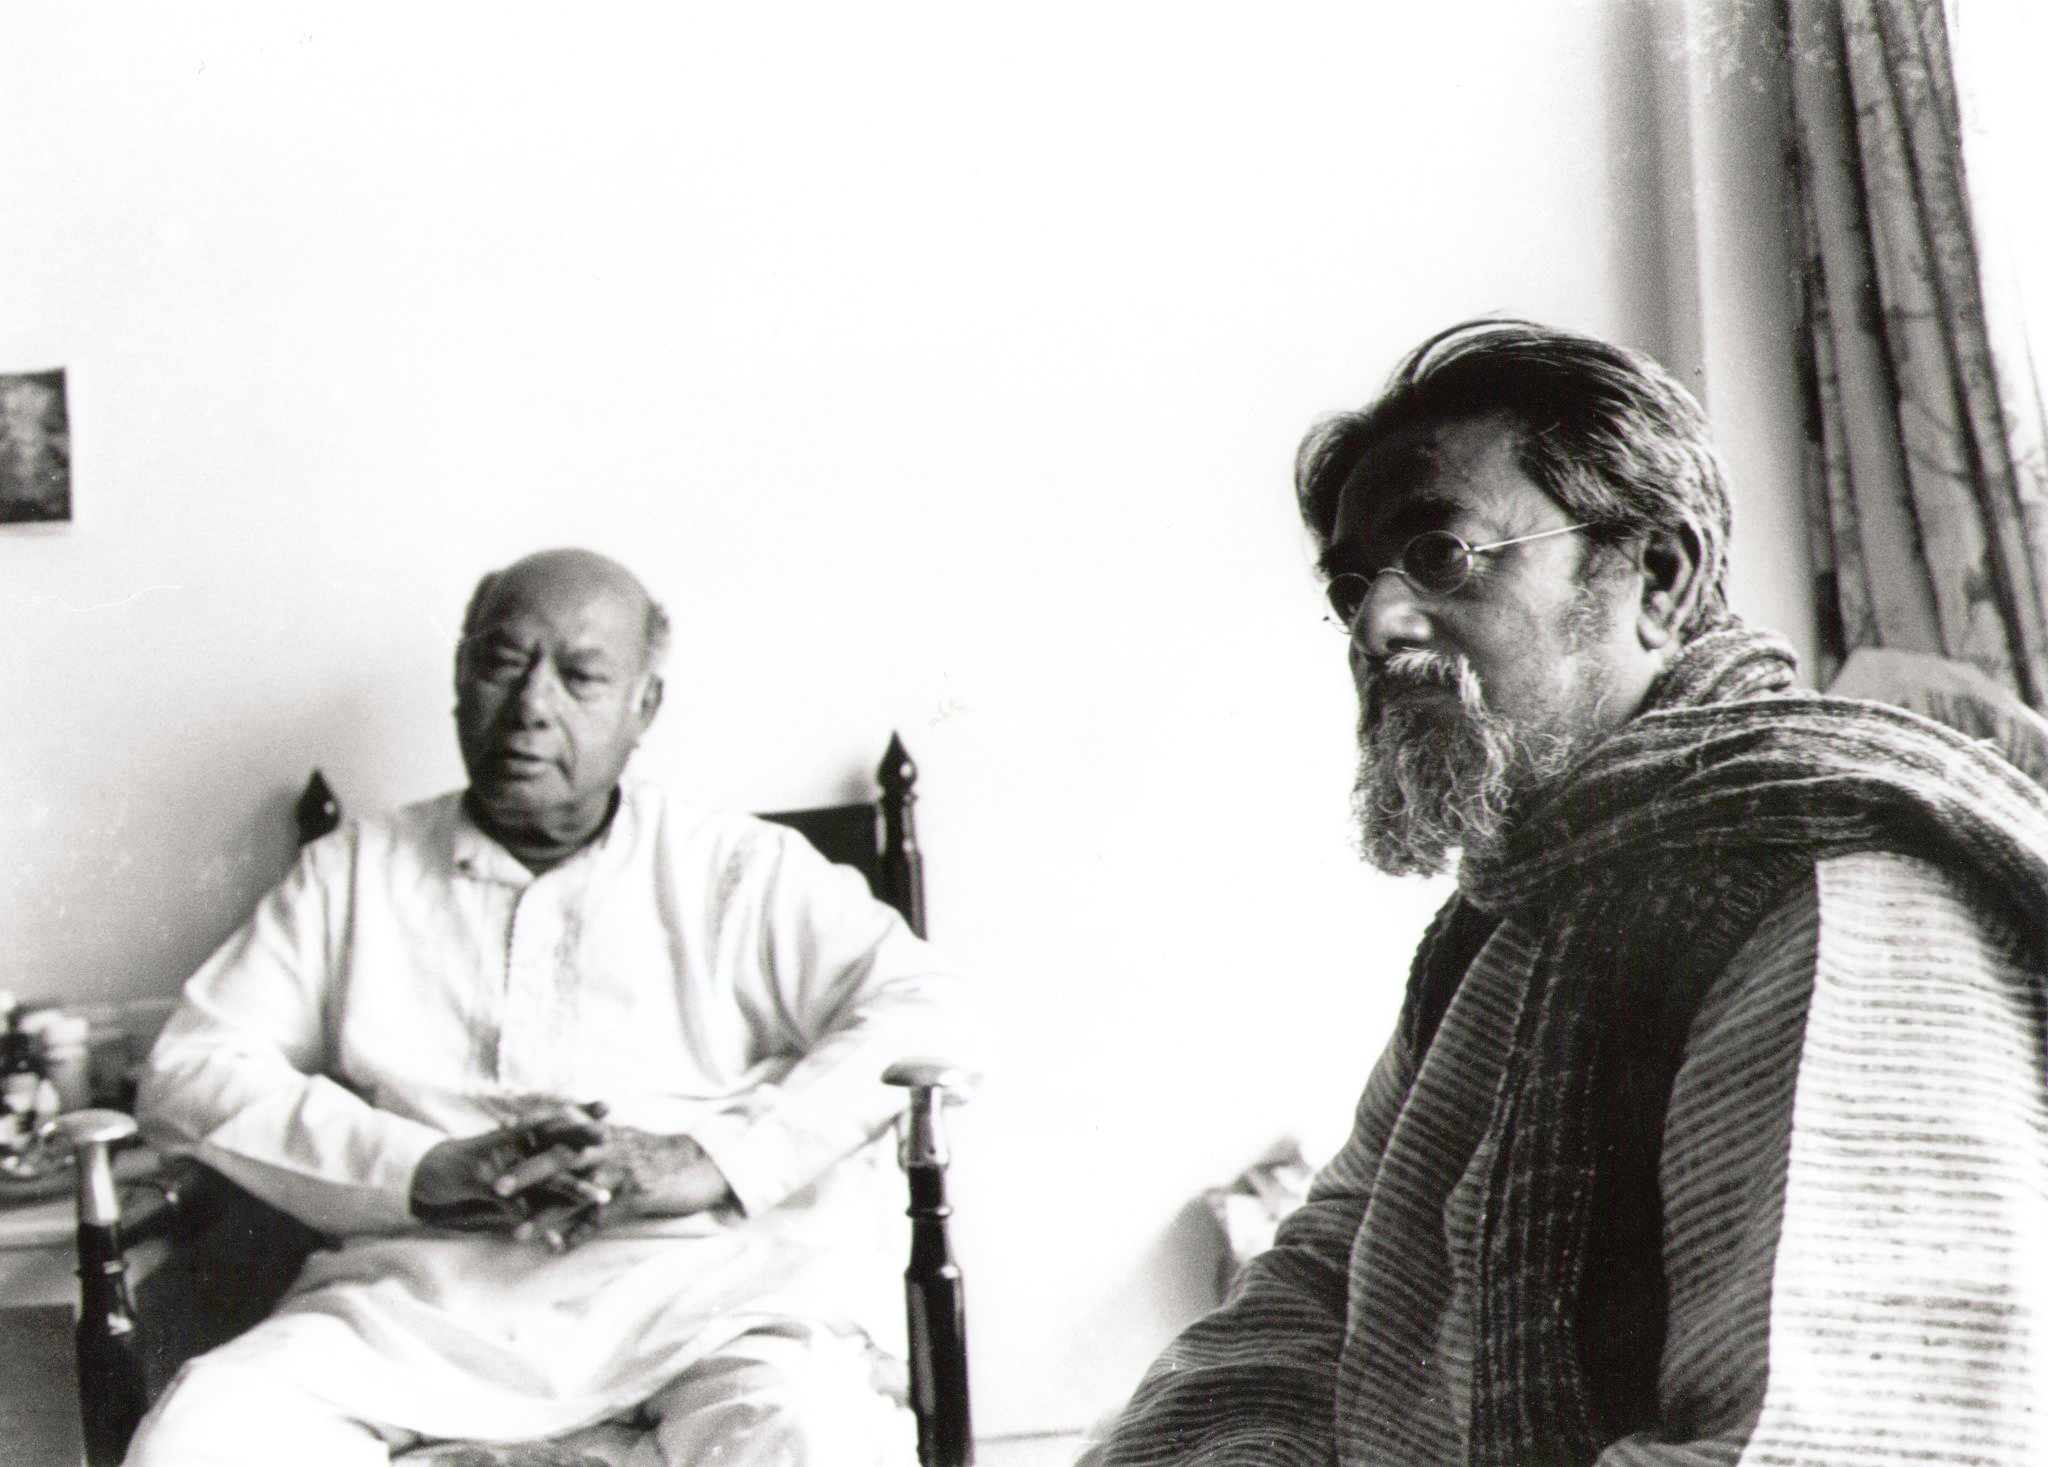 Ustad Ali Akbar Khan & Sarbari Roy Chowdhury / the Virtuoso & the Sculptor at home, Santiniketan © Courtesy Roy Chowdhury, private collection / Sri Nemai Ghosh